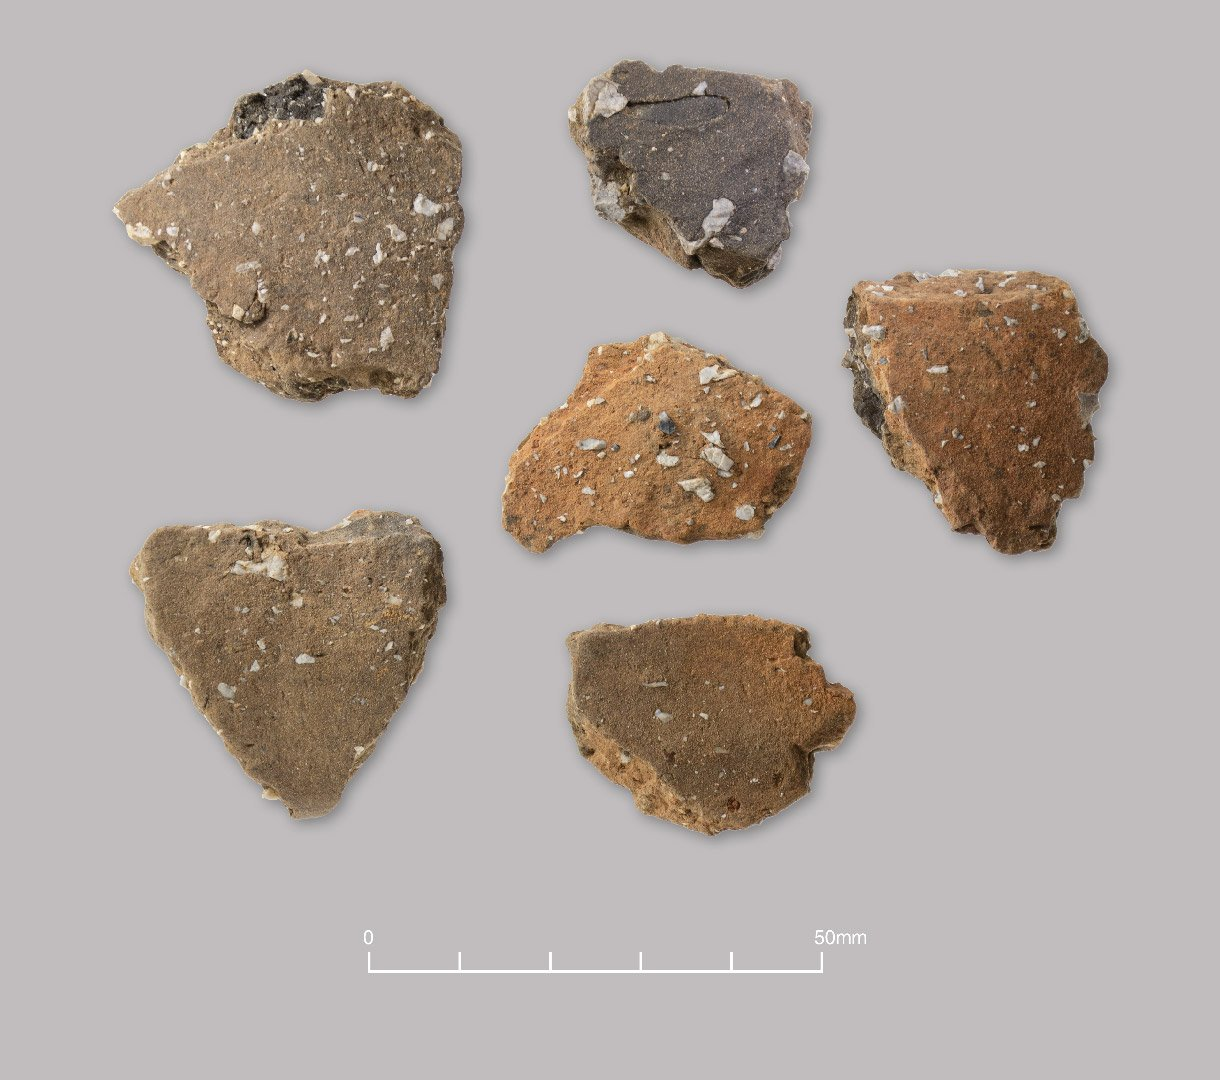 Handmade flint-tempered pottery. Late Bronze Age to Early Iron Age (c. 1000–600 BC)